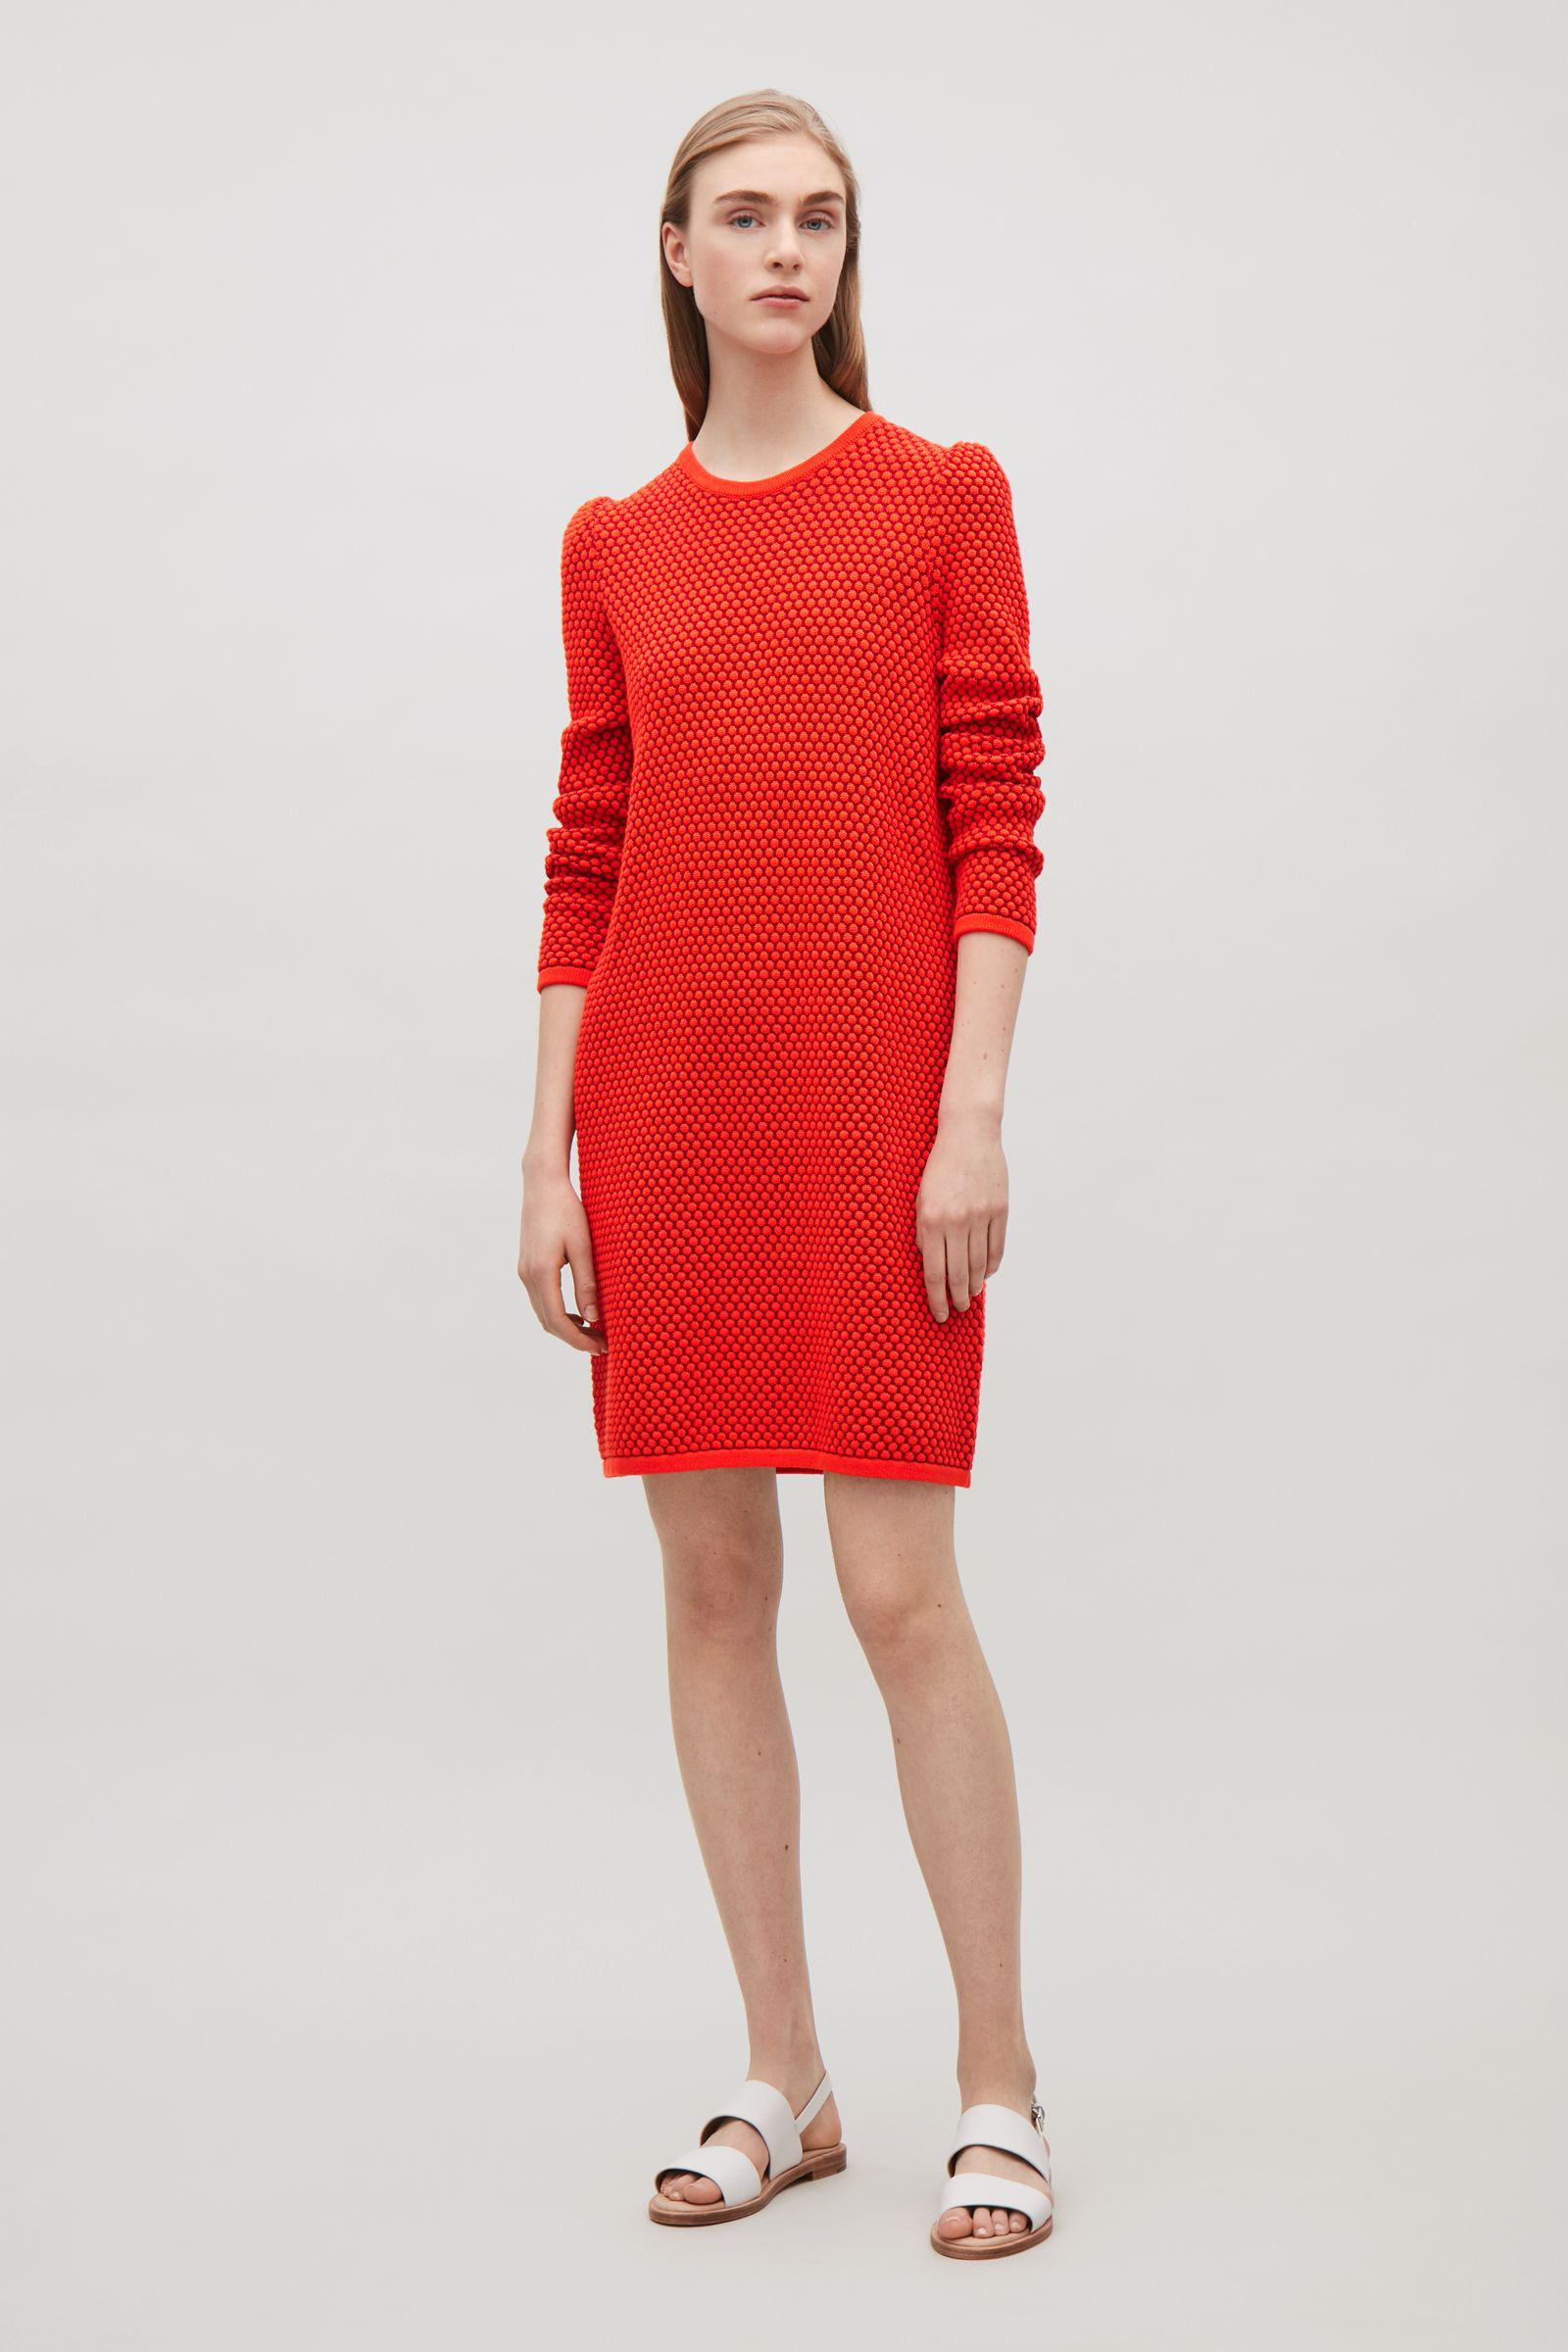 adf7990d3a3d COS Raised Knit Dress in Red - Lyst